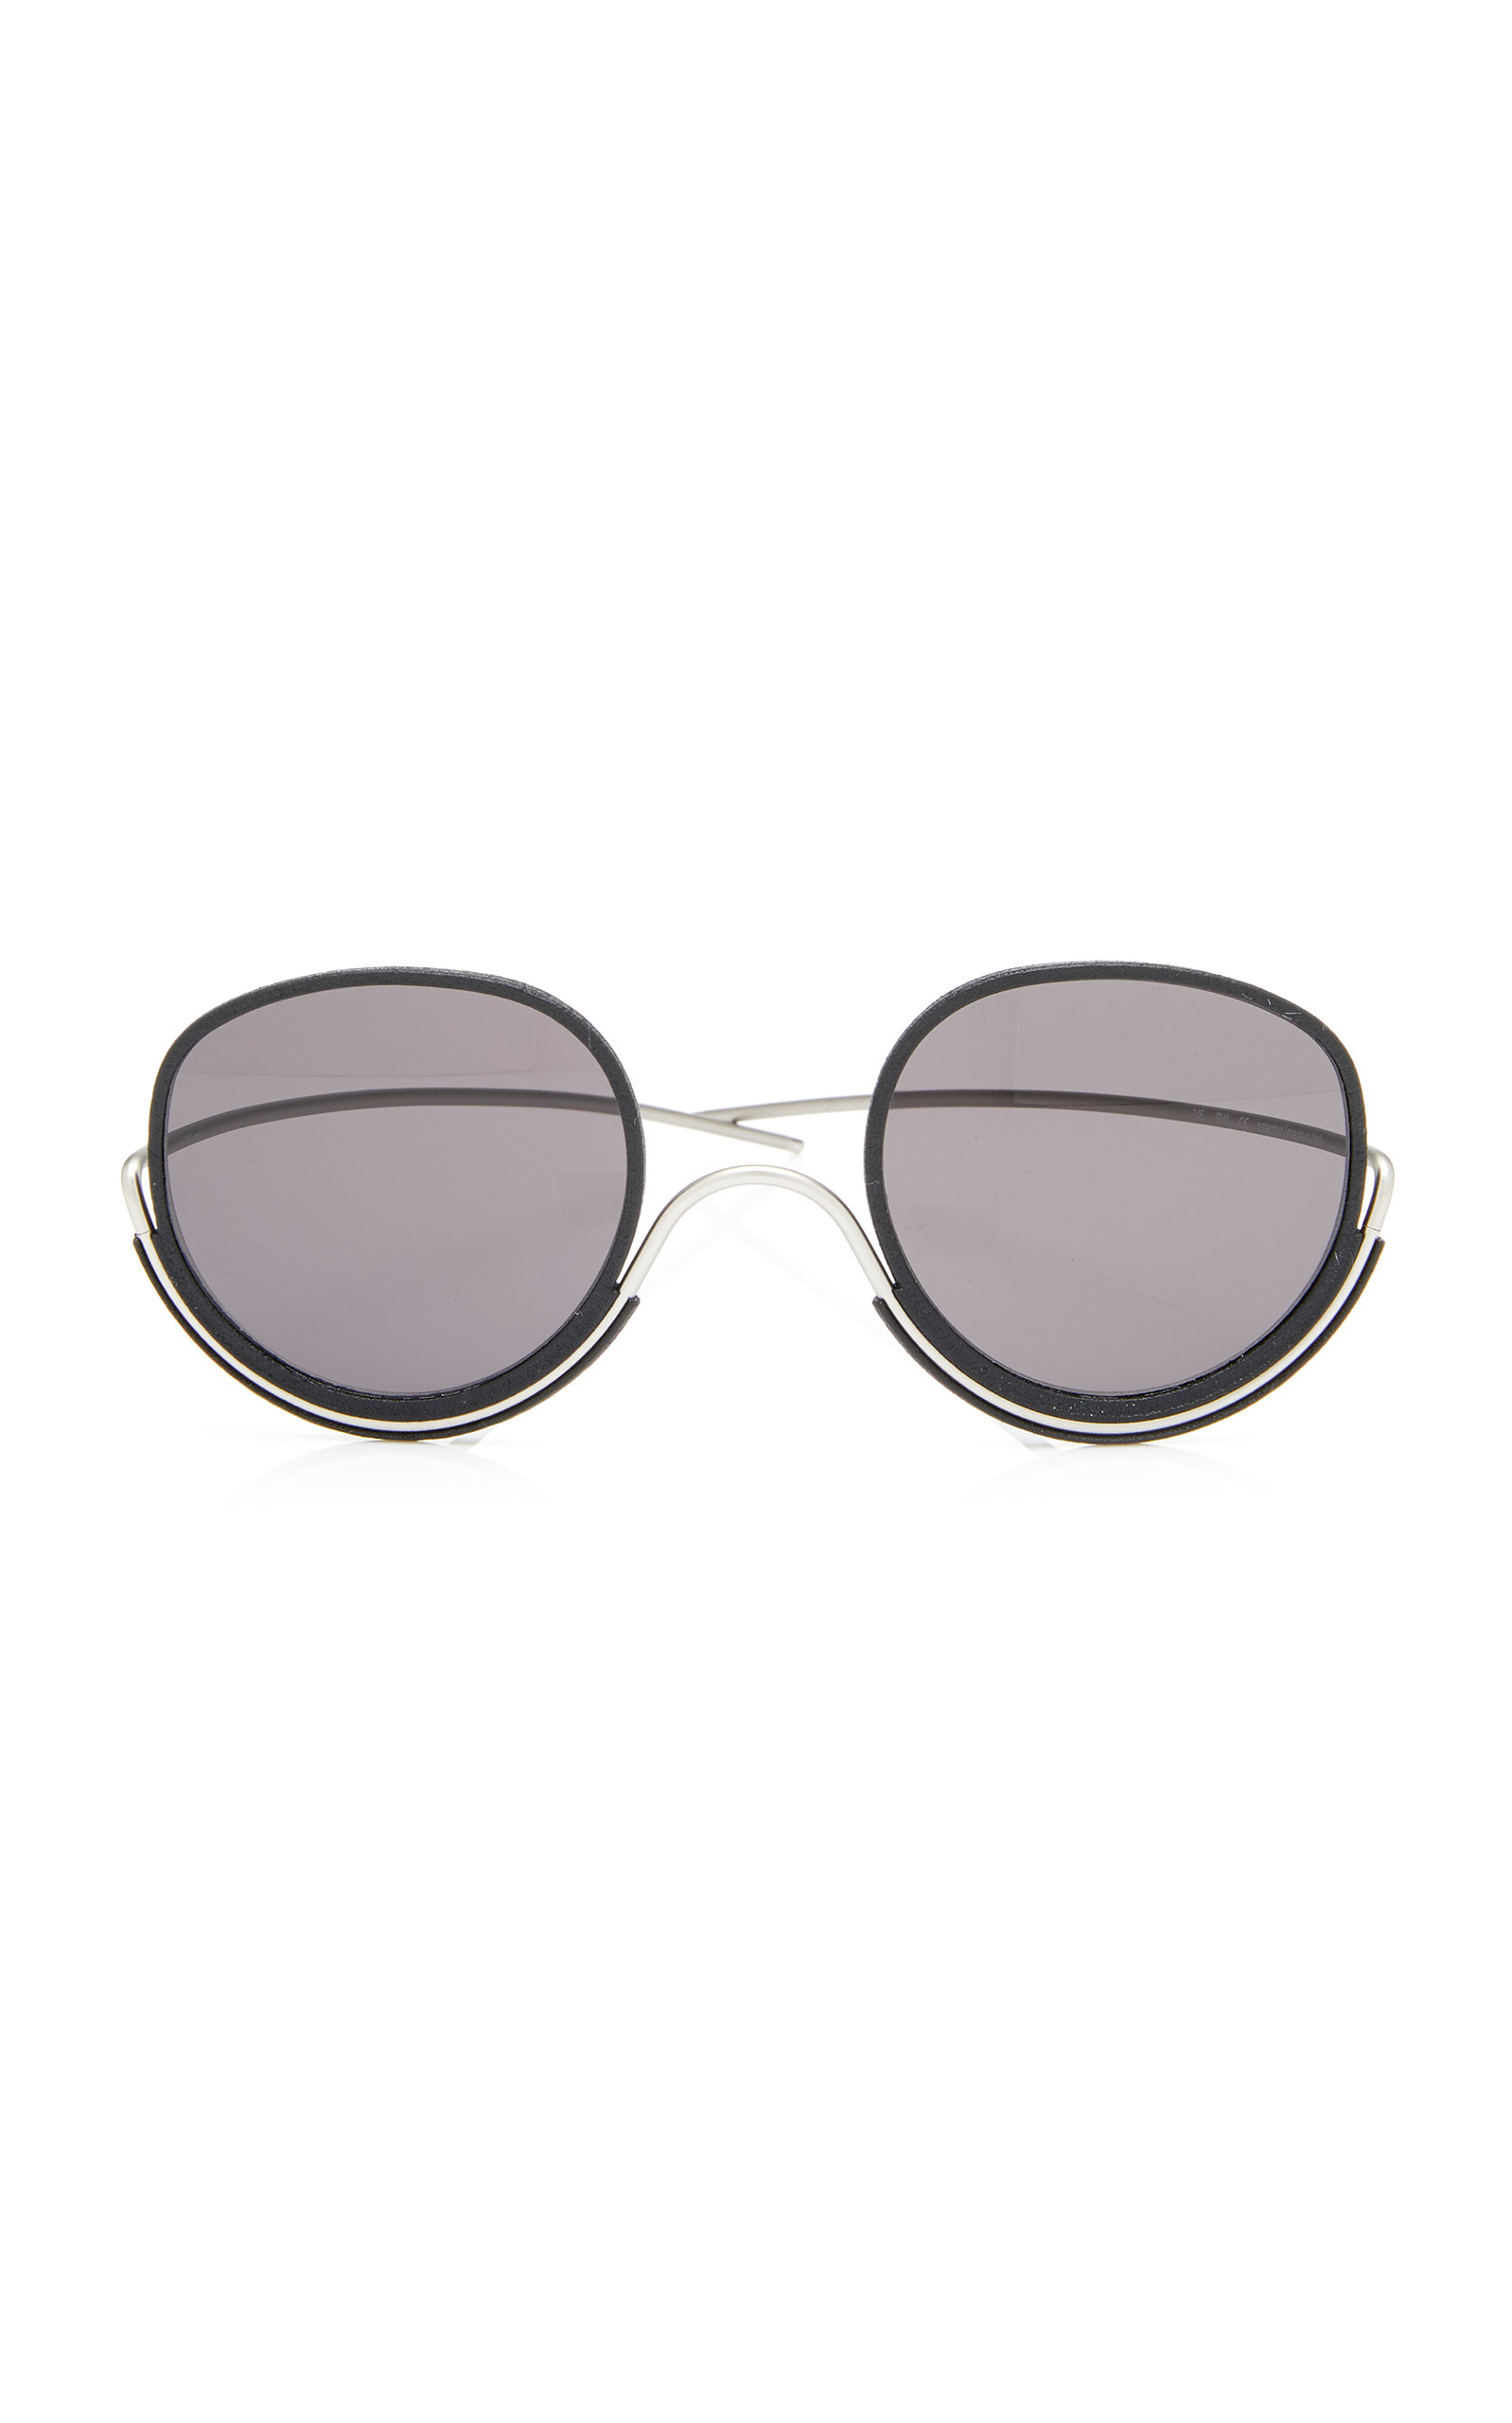 WIRES Coward'S Choice Metal Sunglasses in Black